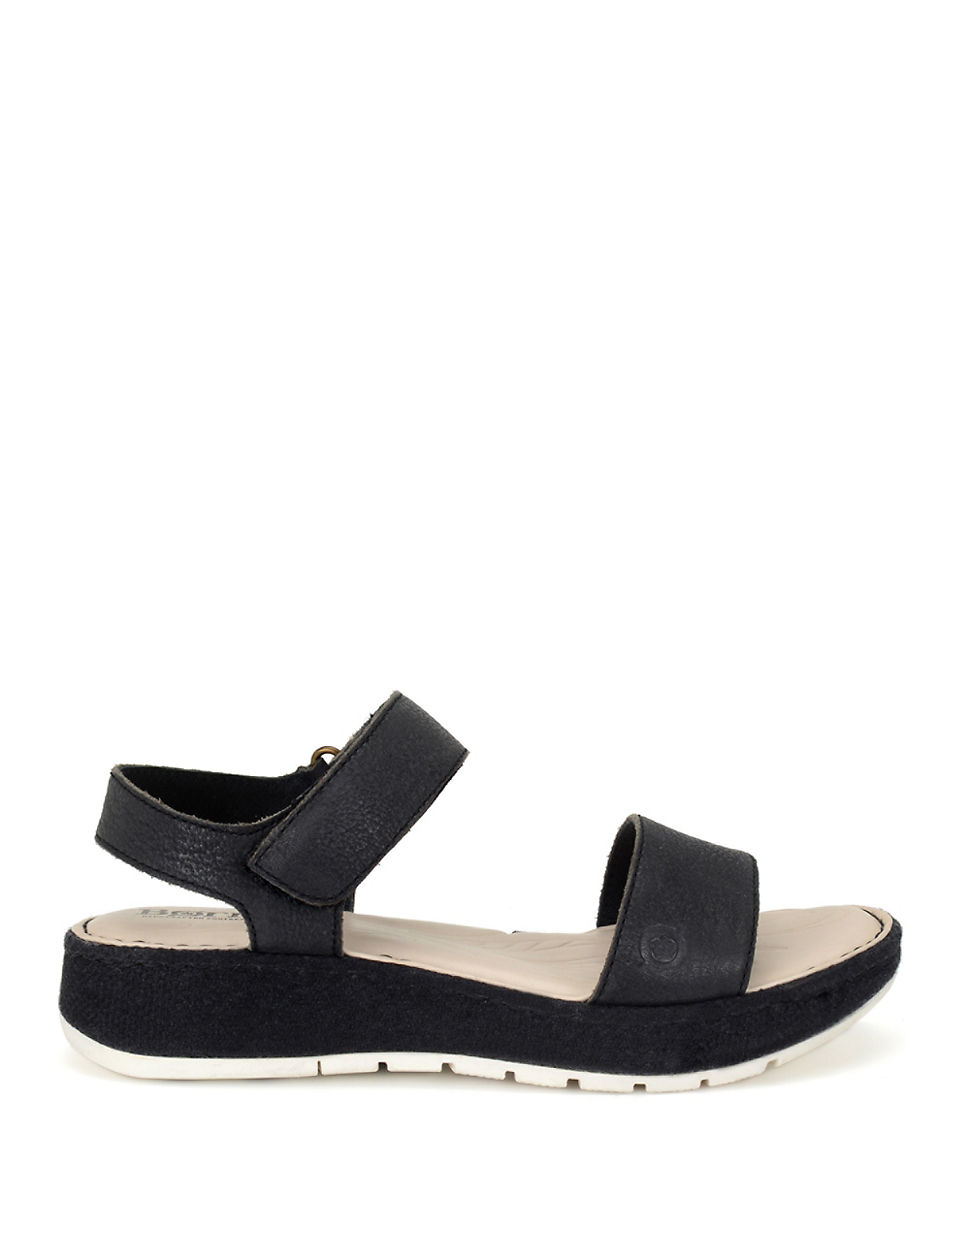 04c26d2785de Lyst - Born Petula Nubuck Sandals in Black